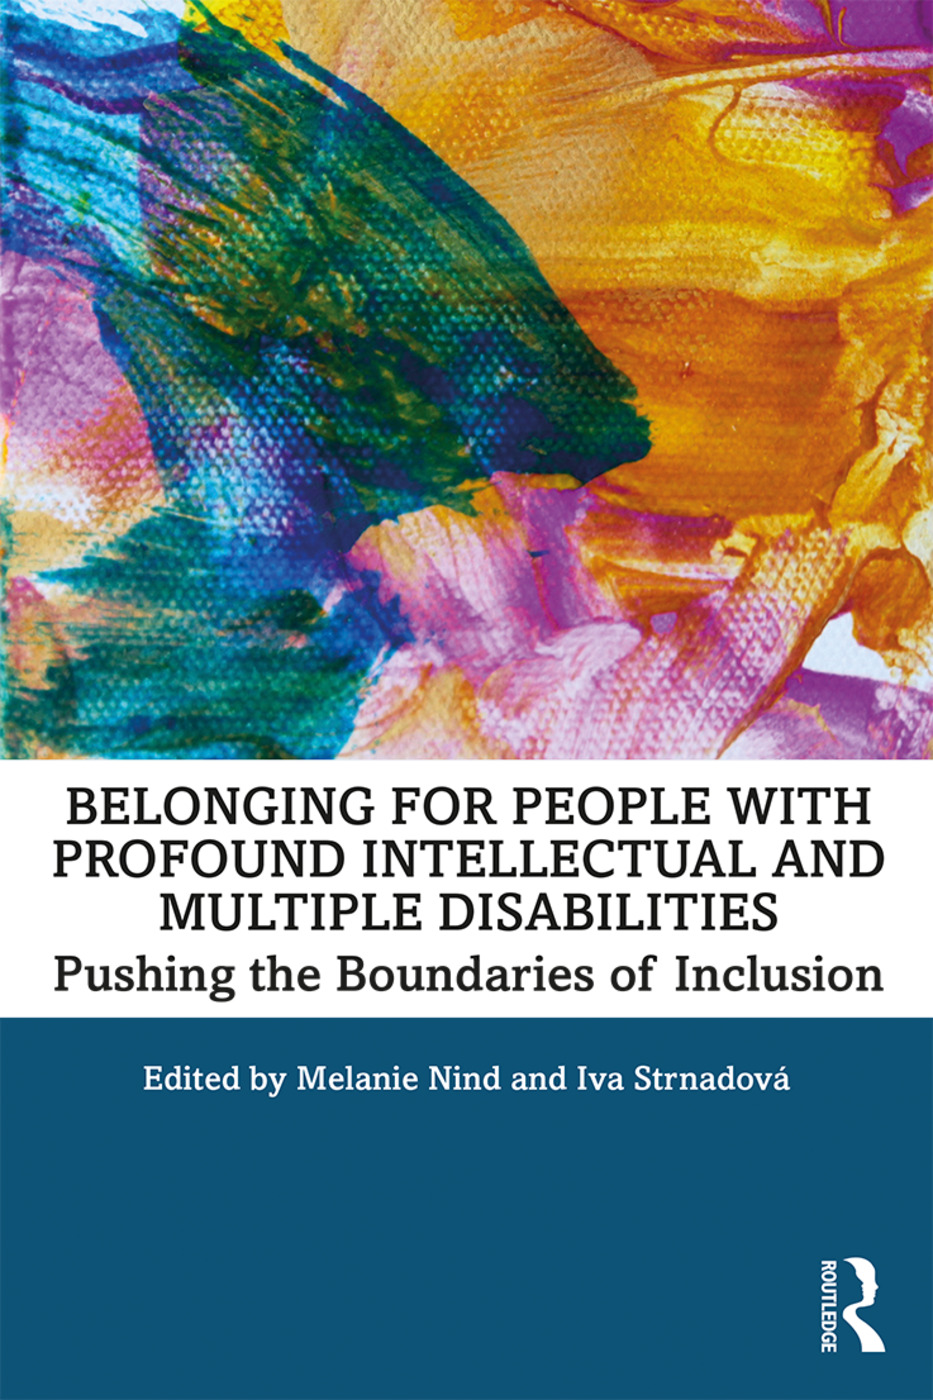 Belonging for People with Profound Intellectual and Multiple Disabilities: Pushing the Boundaries of Inclusion book cover